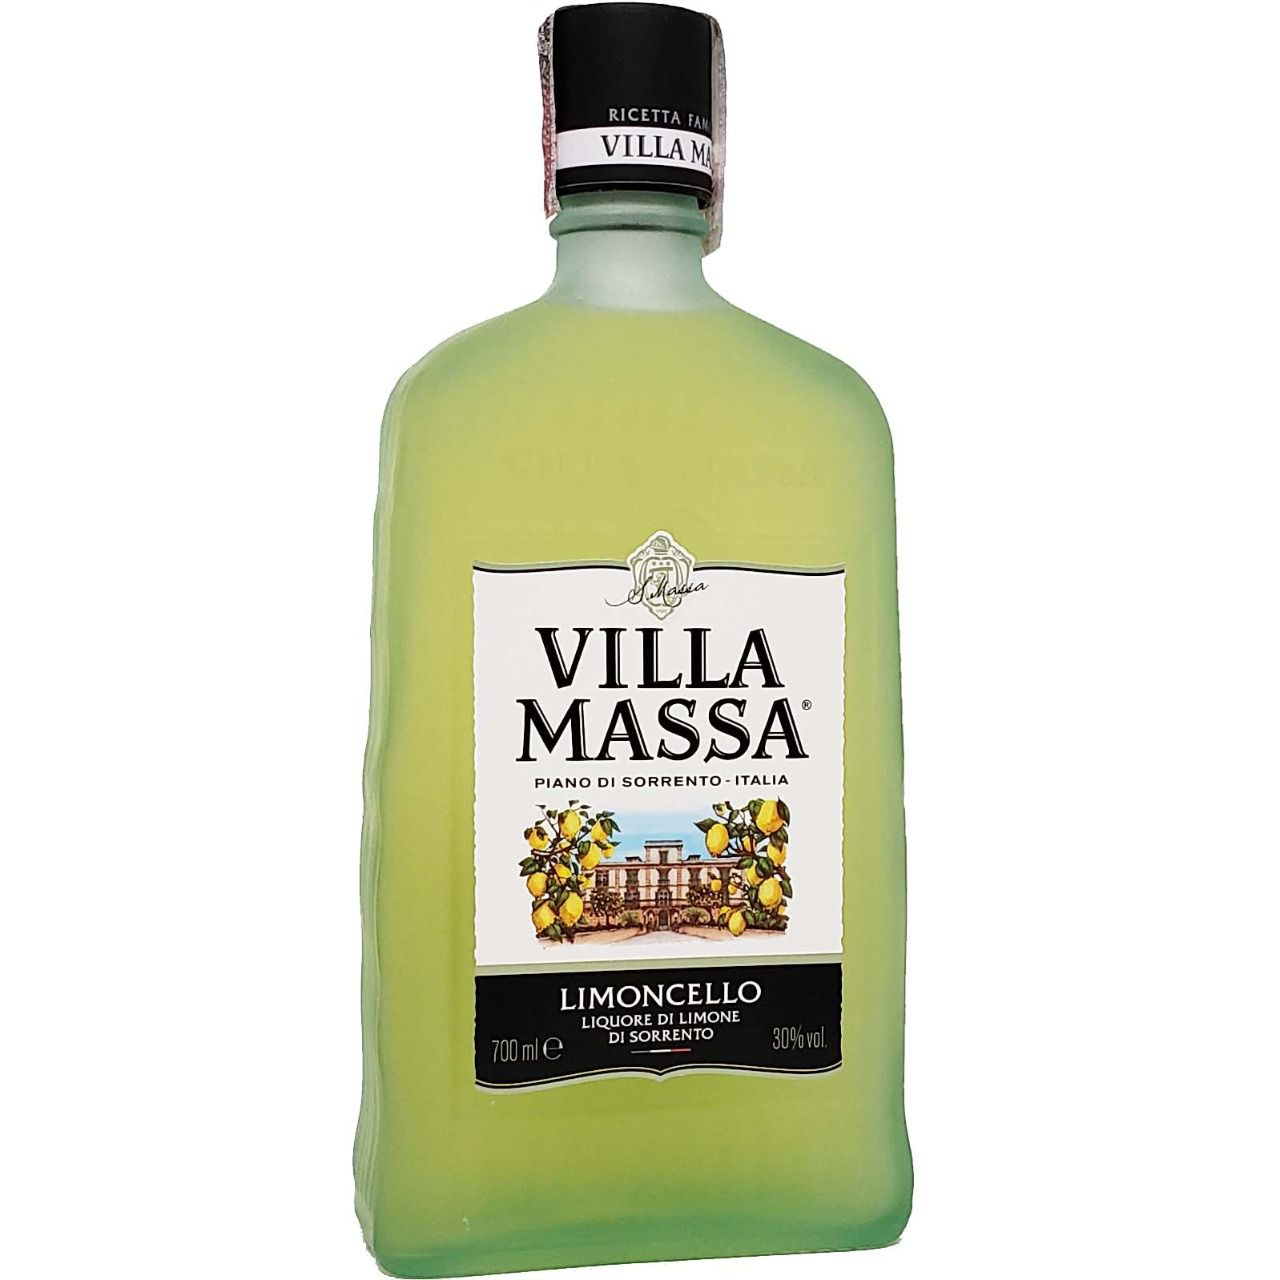 Licor Limoncello Villa Massa - 700ml -